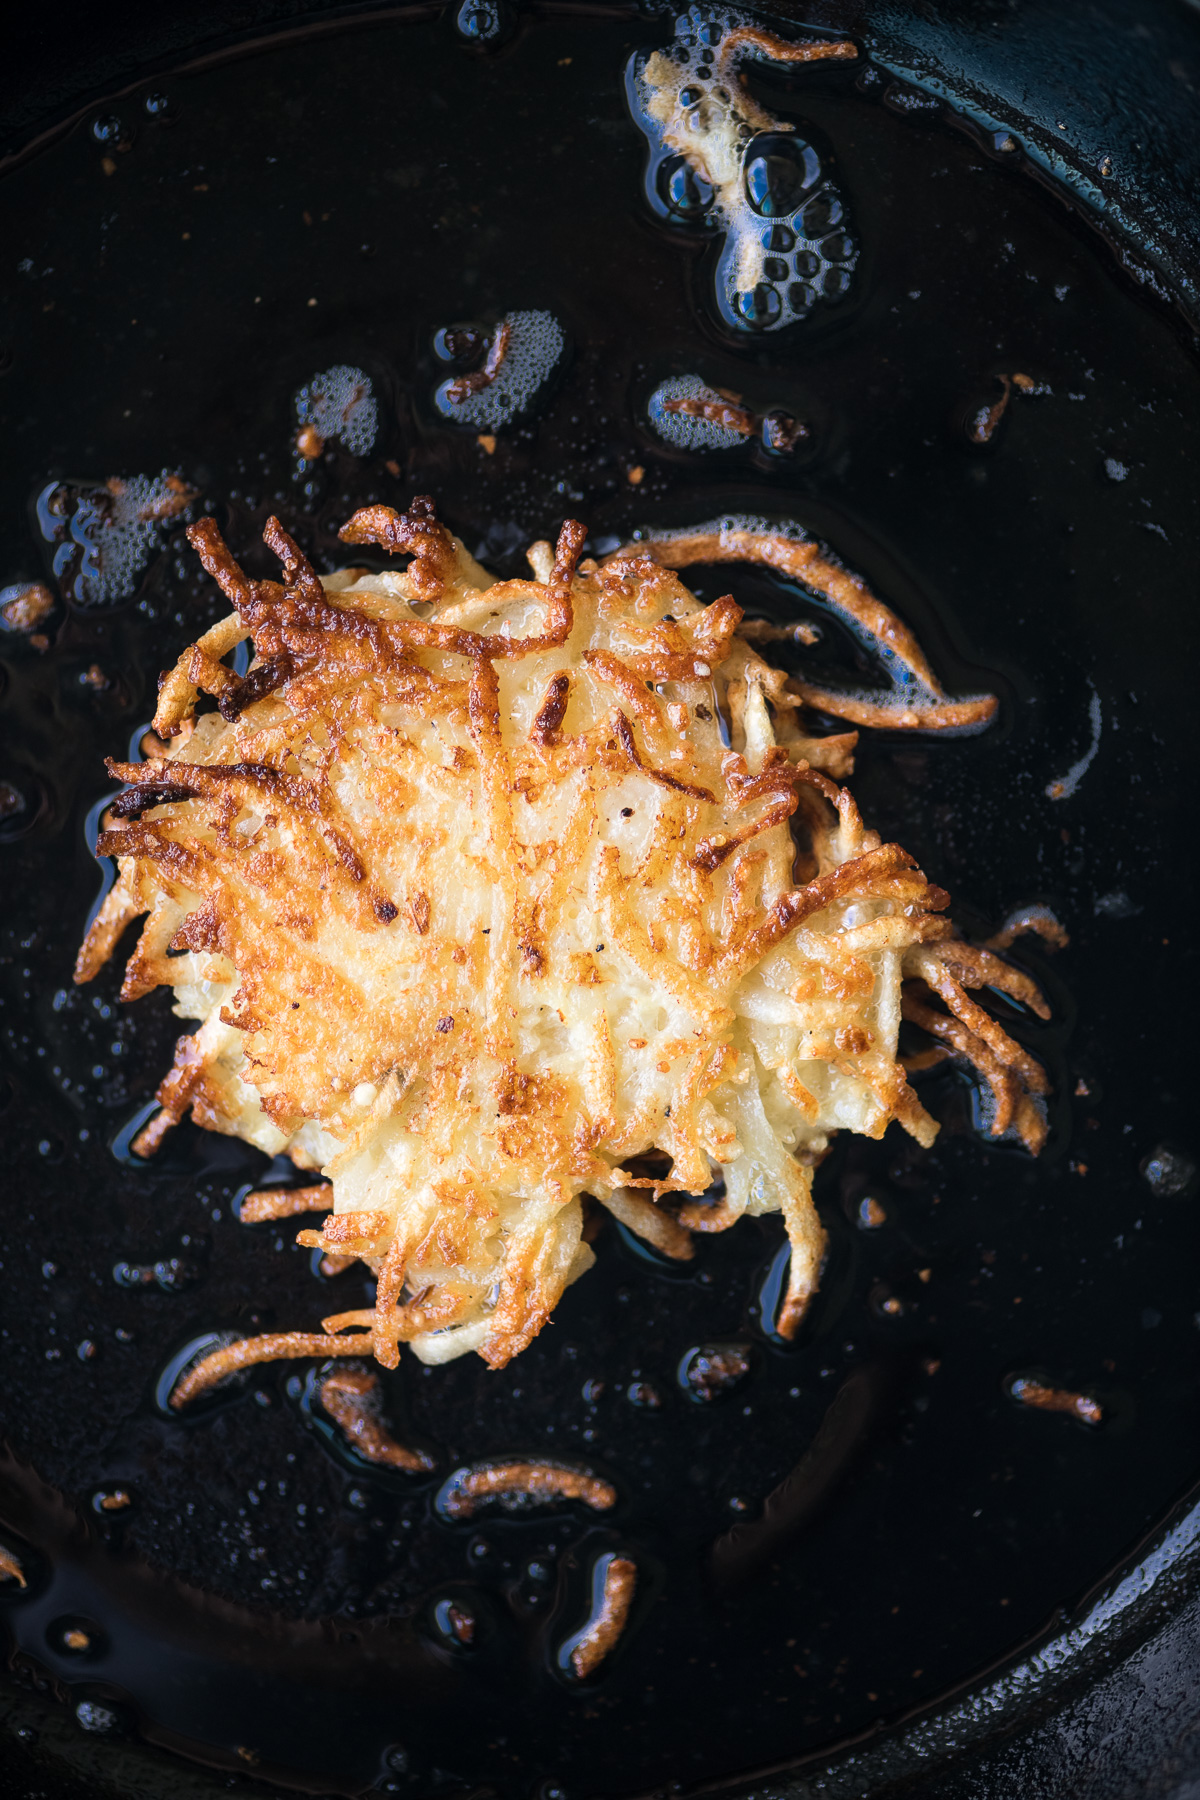 frying potato latkes in a cast iron skillet